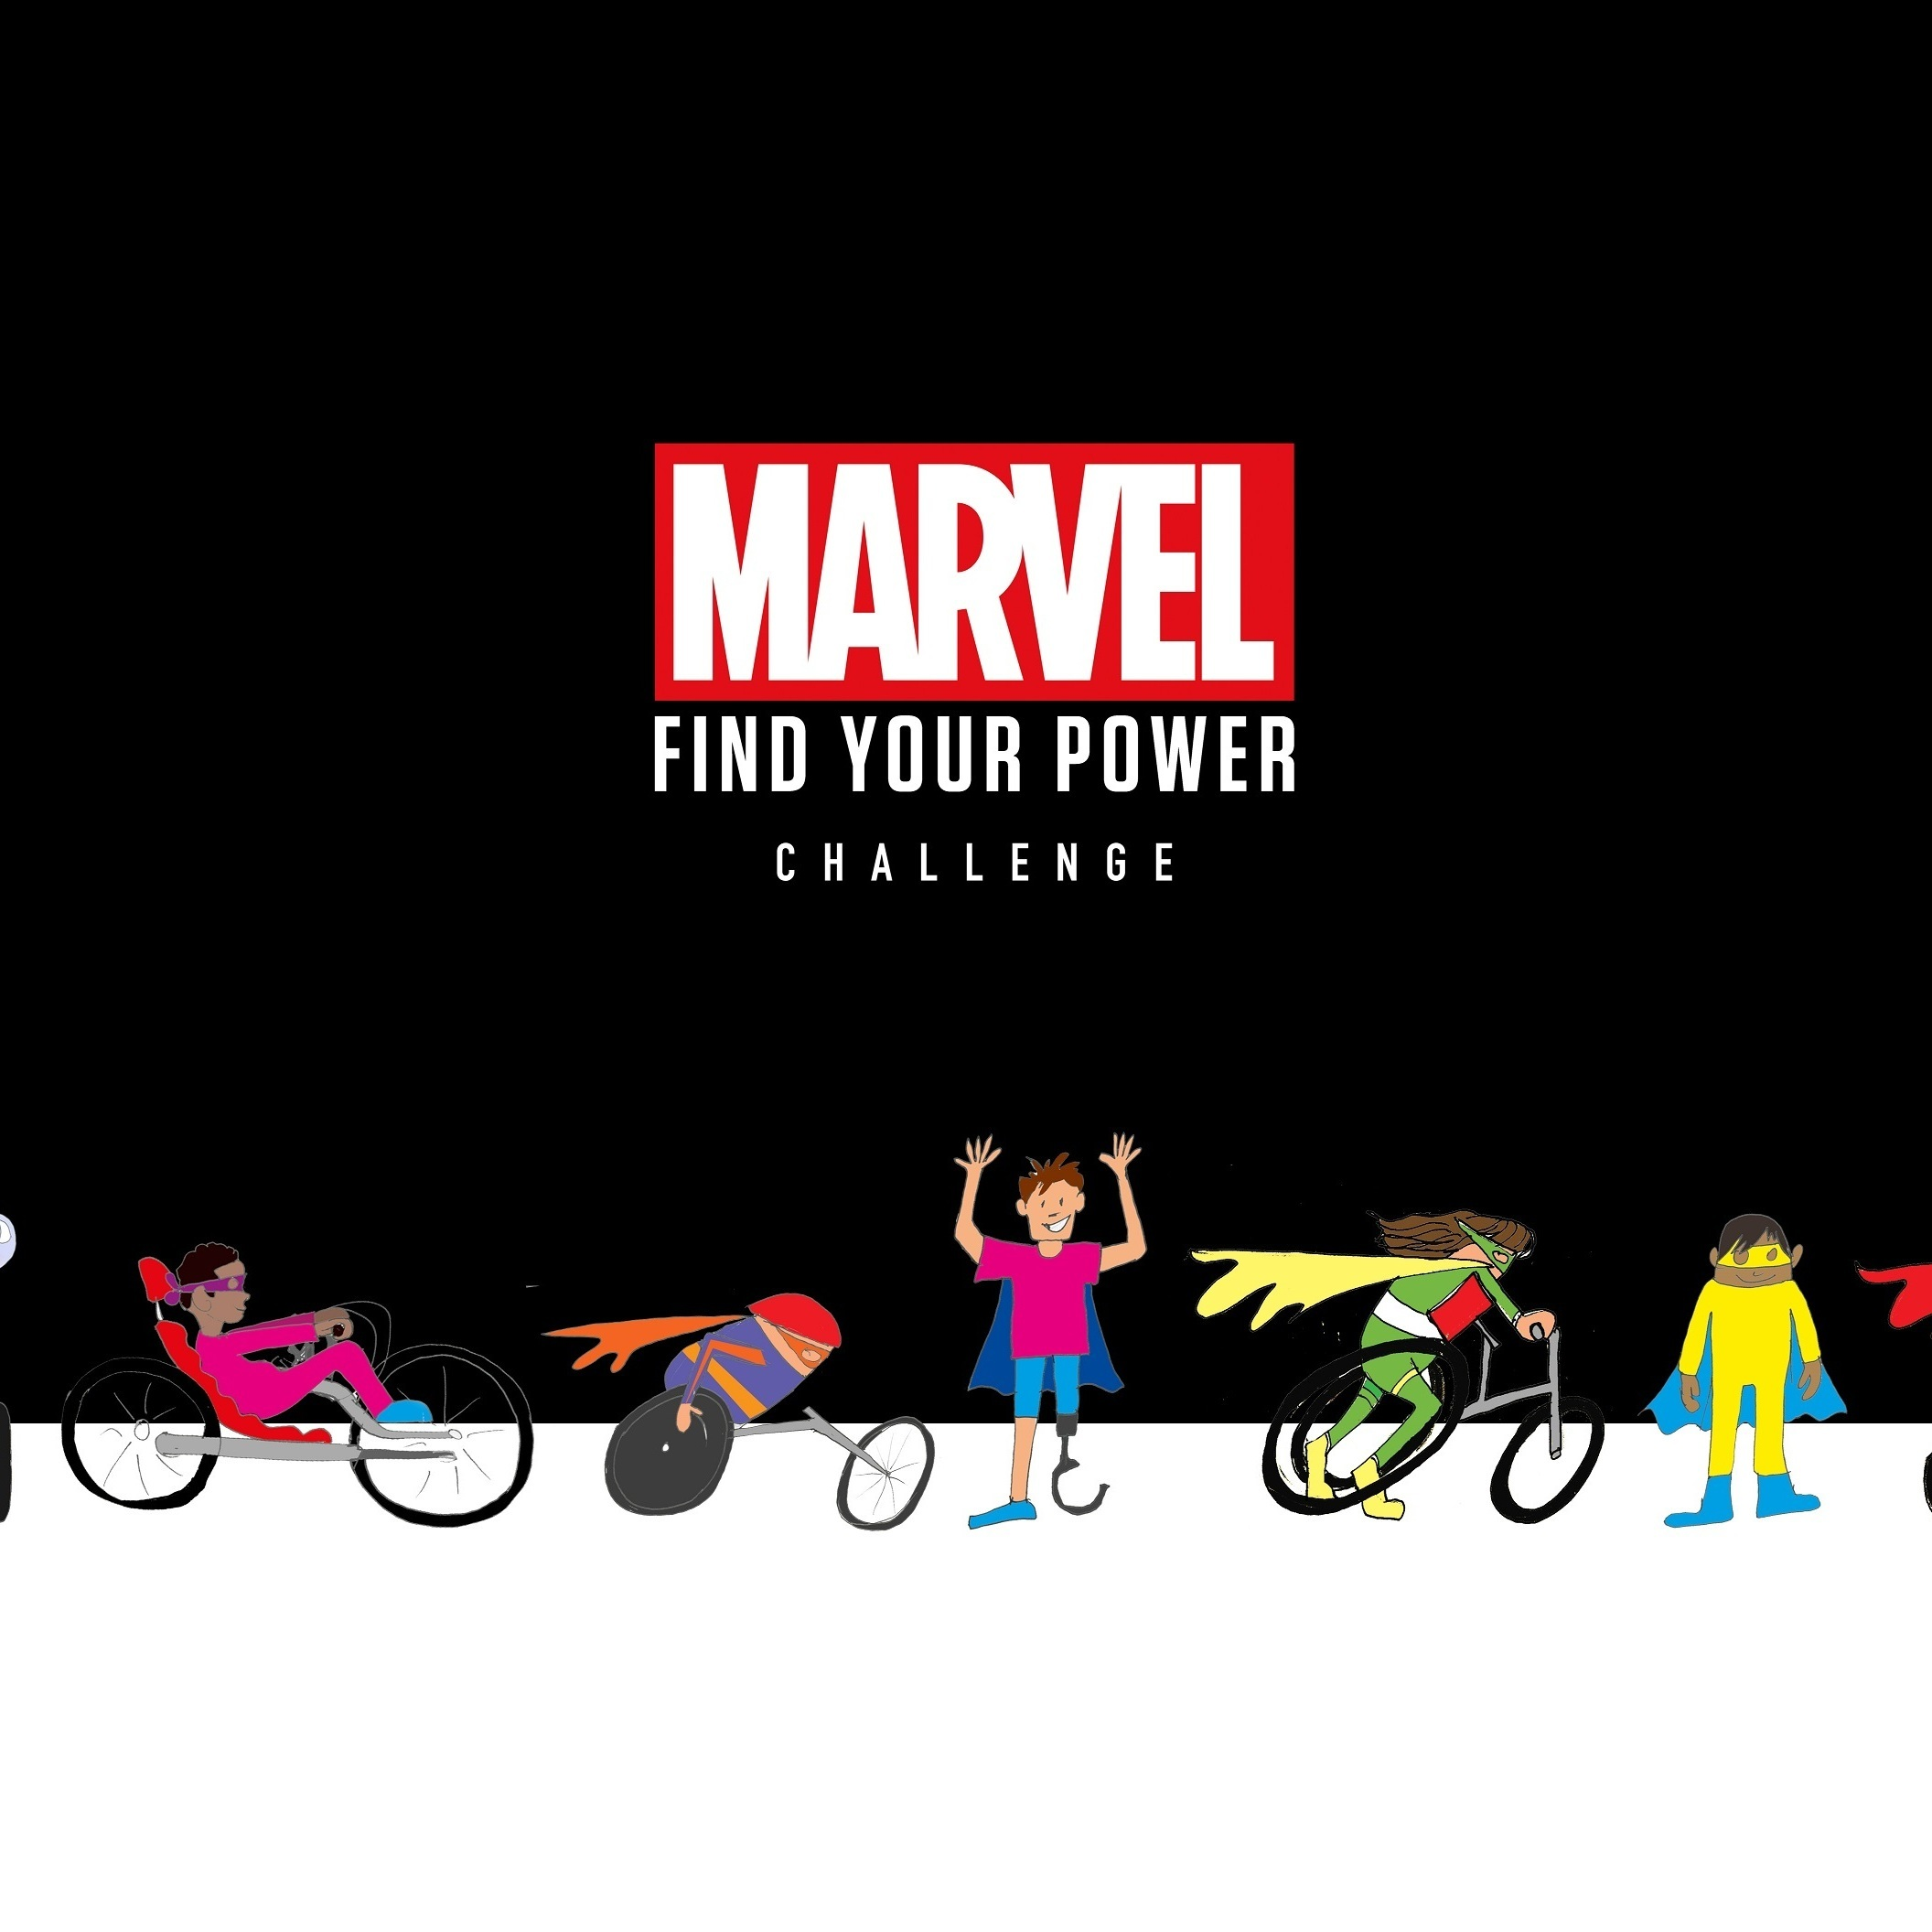 Marvel's 'Find Your Power Challenge' – Lee Ridley, Briony Williams, Sophie Morgan, Rhianna Clements and Jordan Jarrett Bryan announced as celebrity team captains